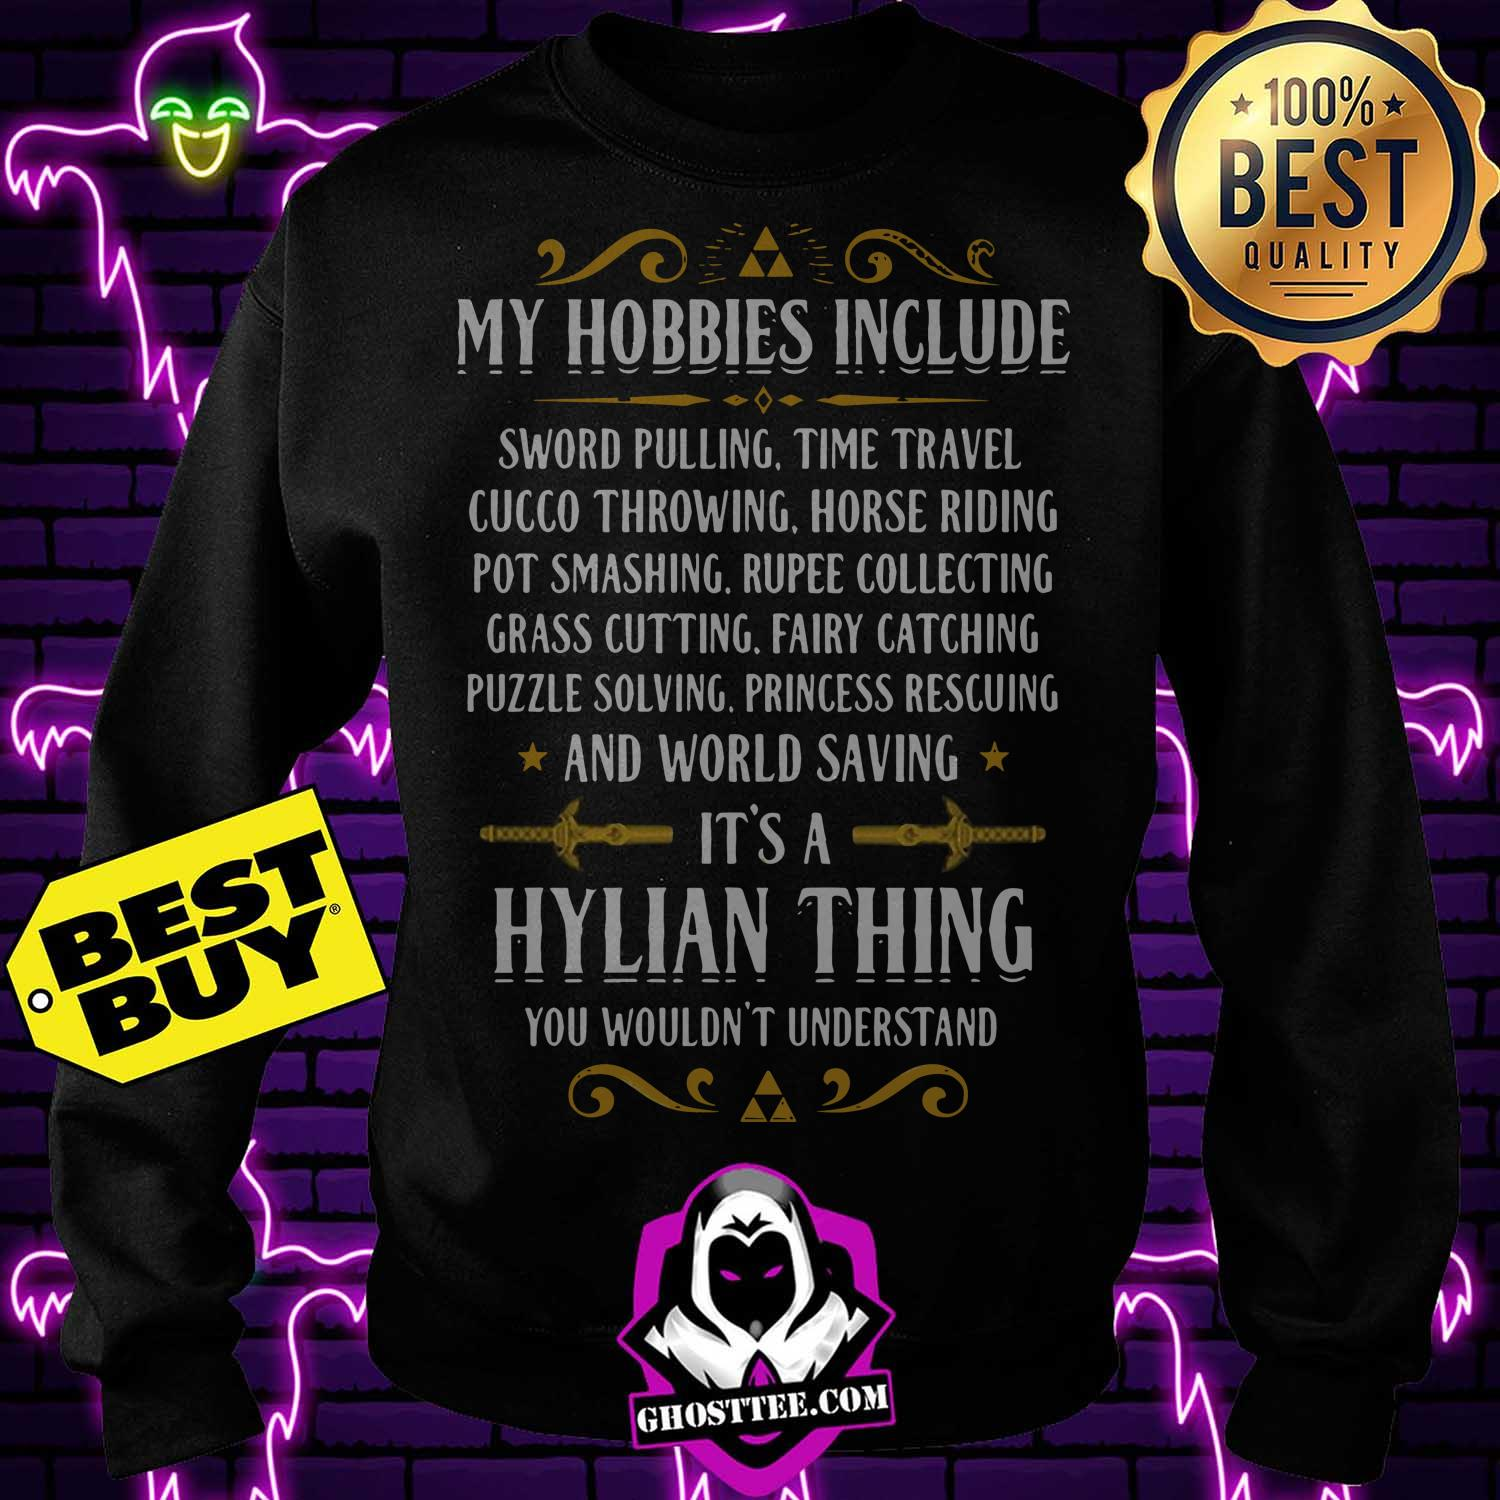 my hobbies include hylian thing legendary you wouldnt understand sweatshirt - My hobbies Include Hylian Thing Legendary you Wouldn't understand shirt